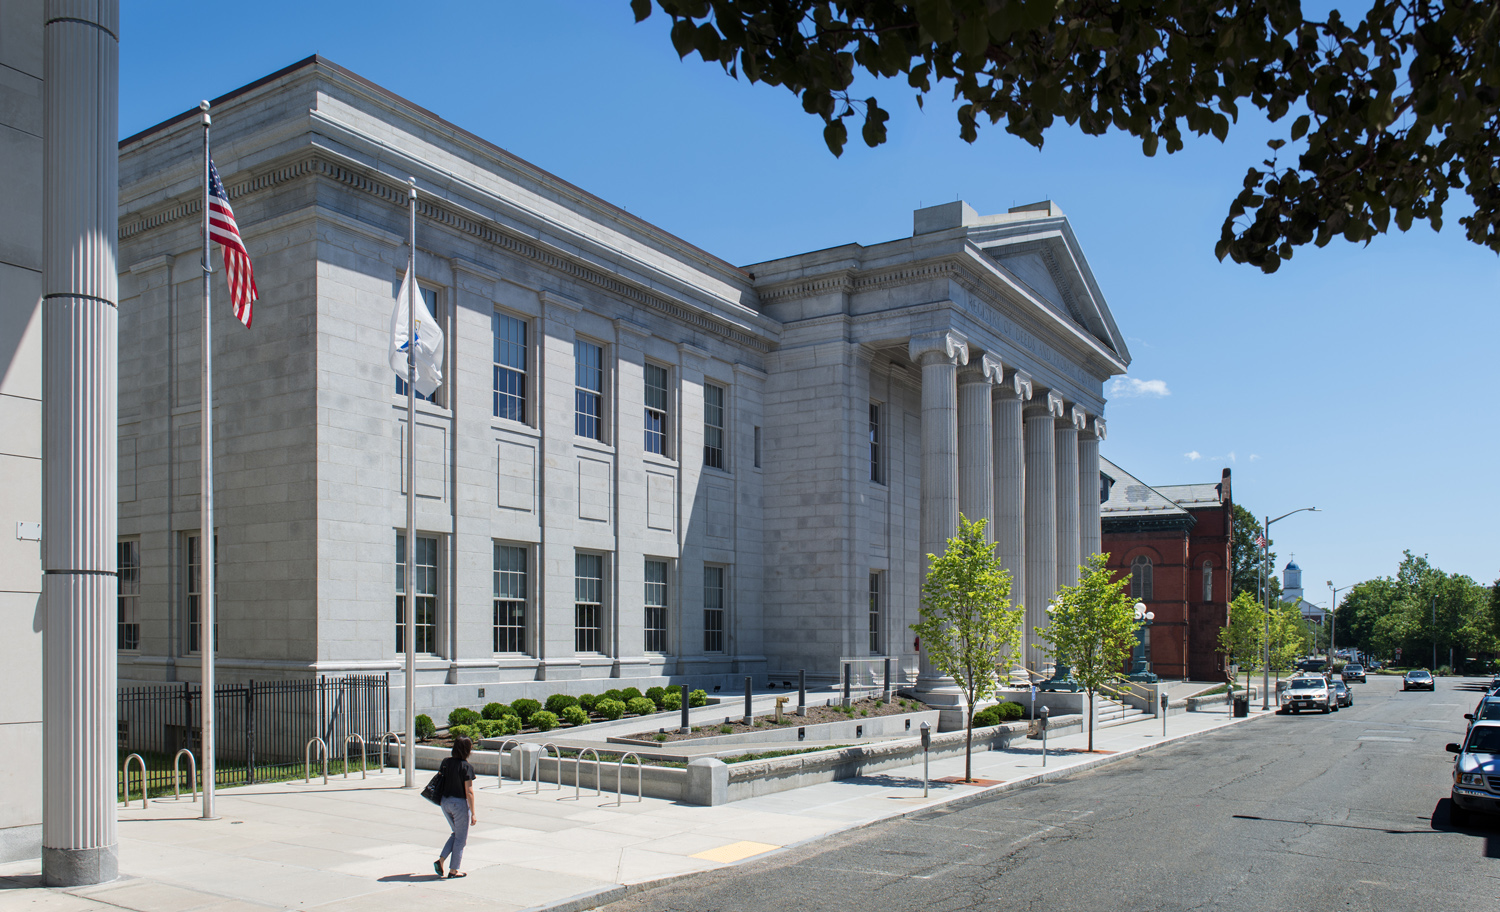 Salem Probate & Family Courthouse